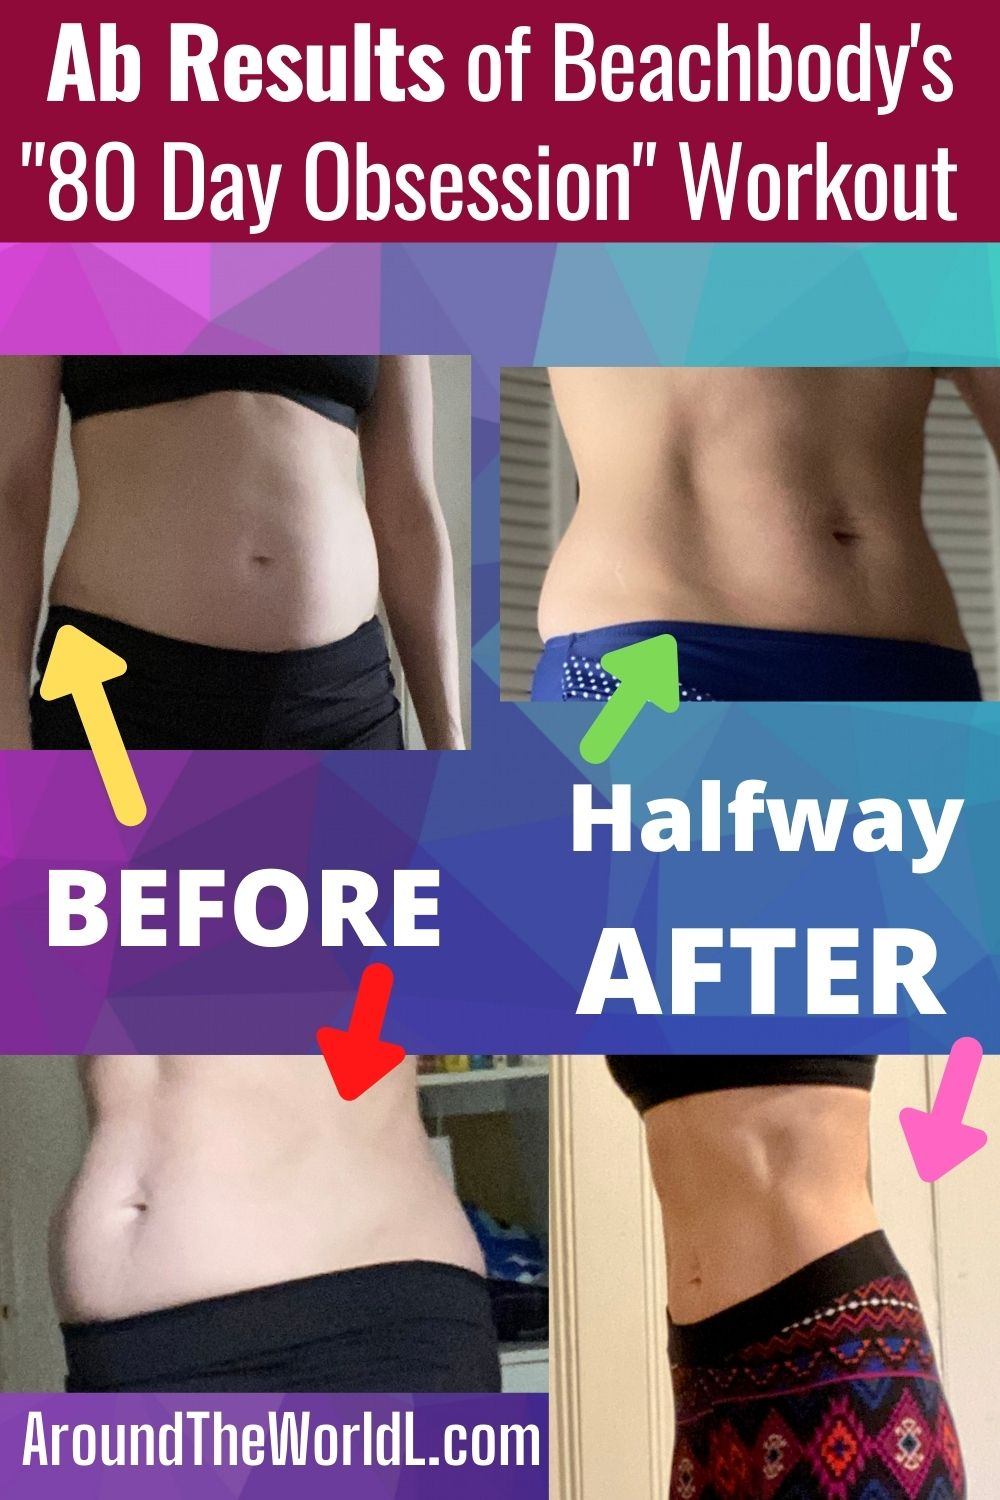 Ab results of 80 Day Obsession on Beachbody